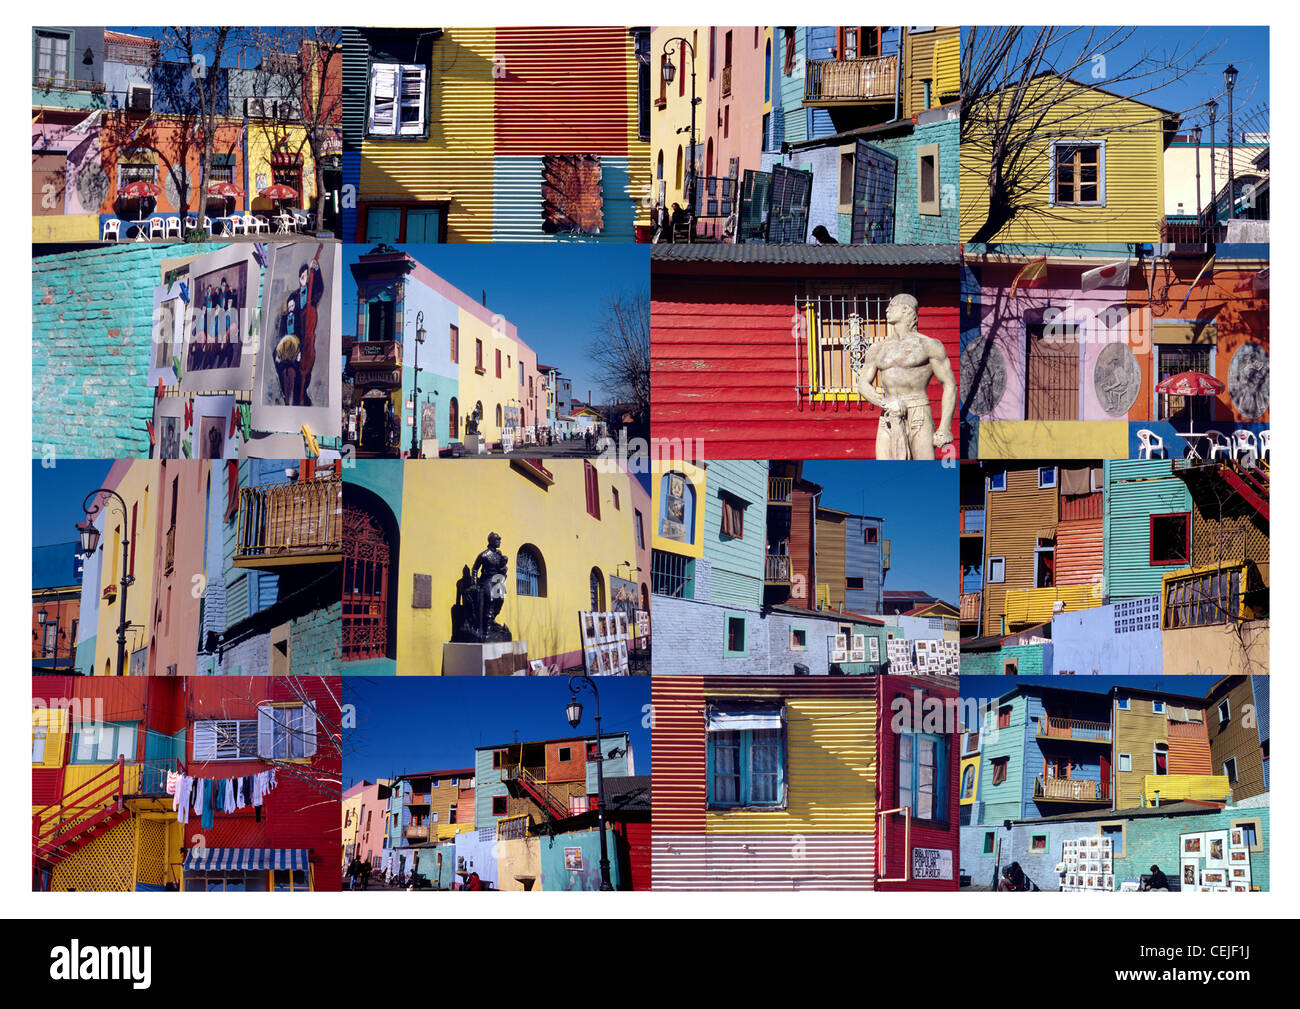 Collage of the colourful architecture of the La Boca region in Buenos Aires, Argentina, South America - Stock Image